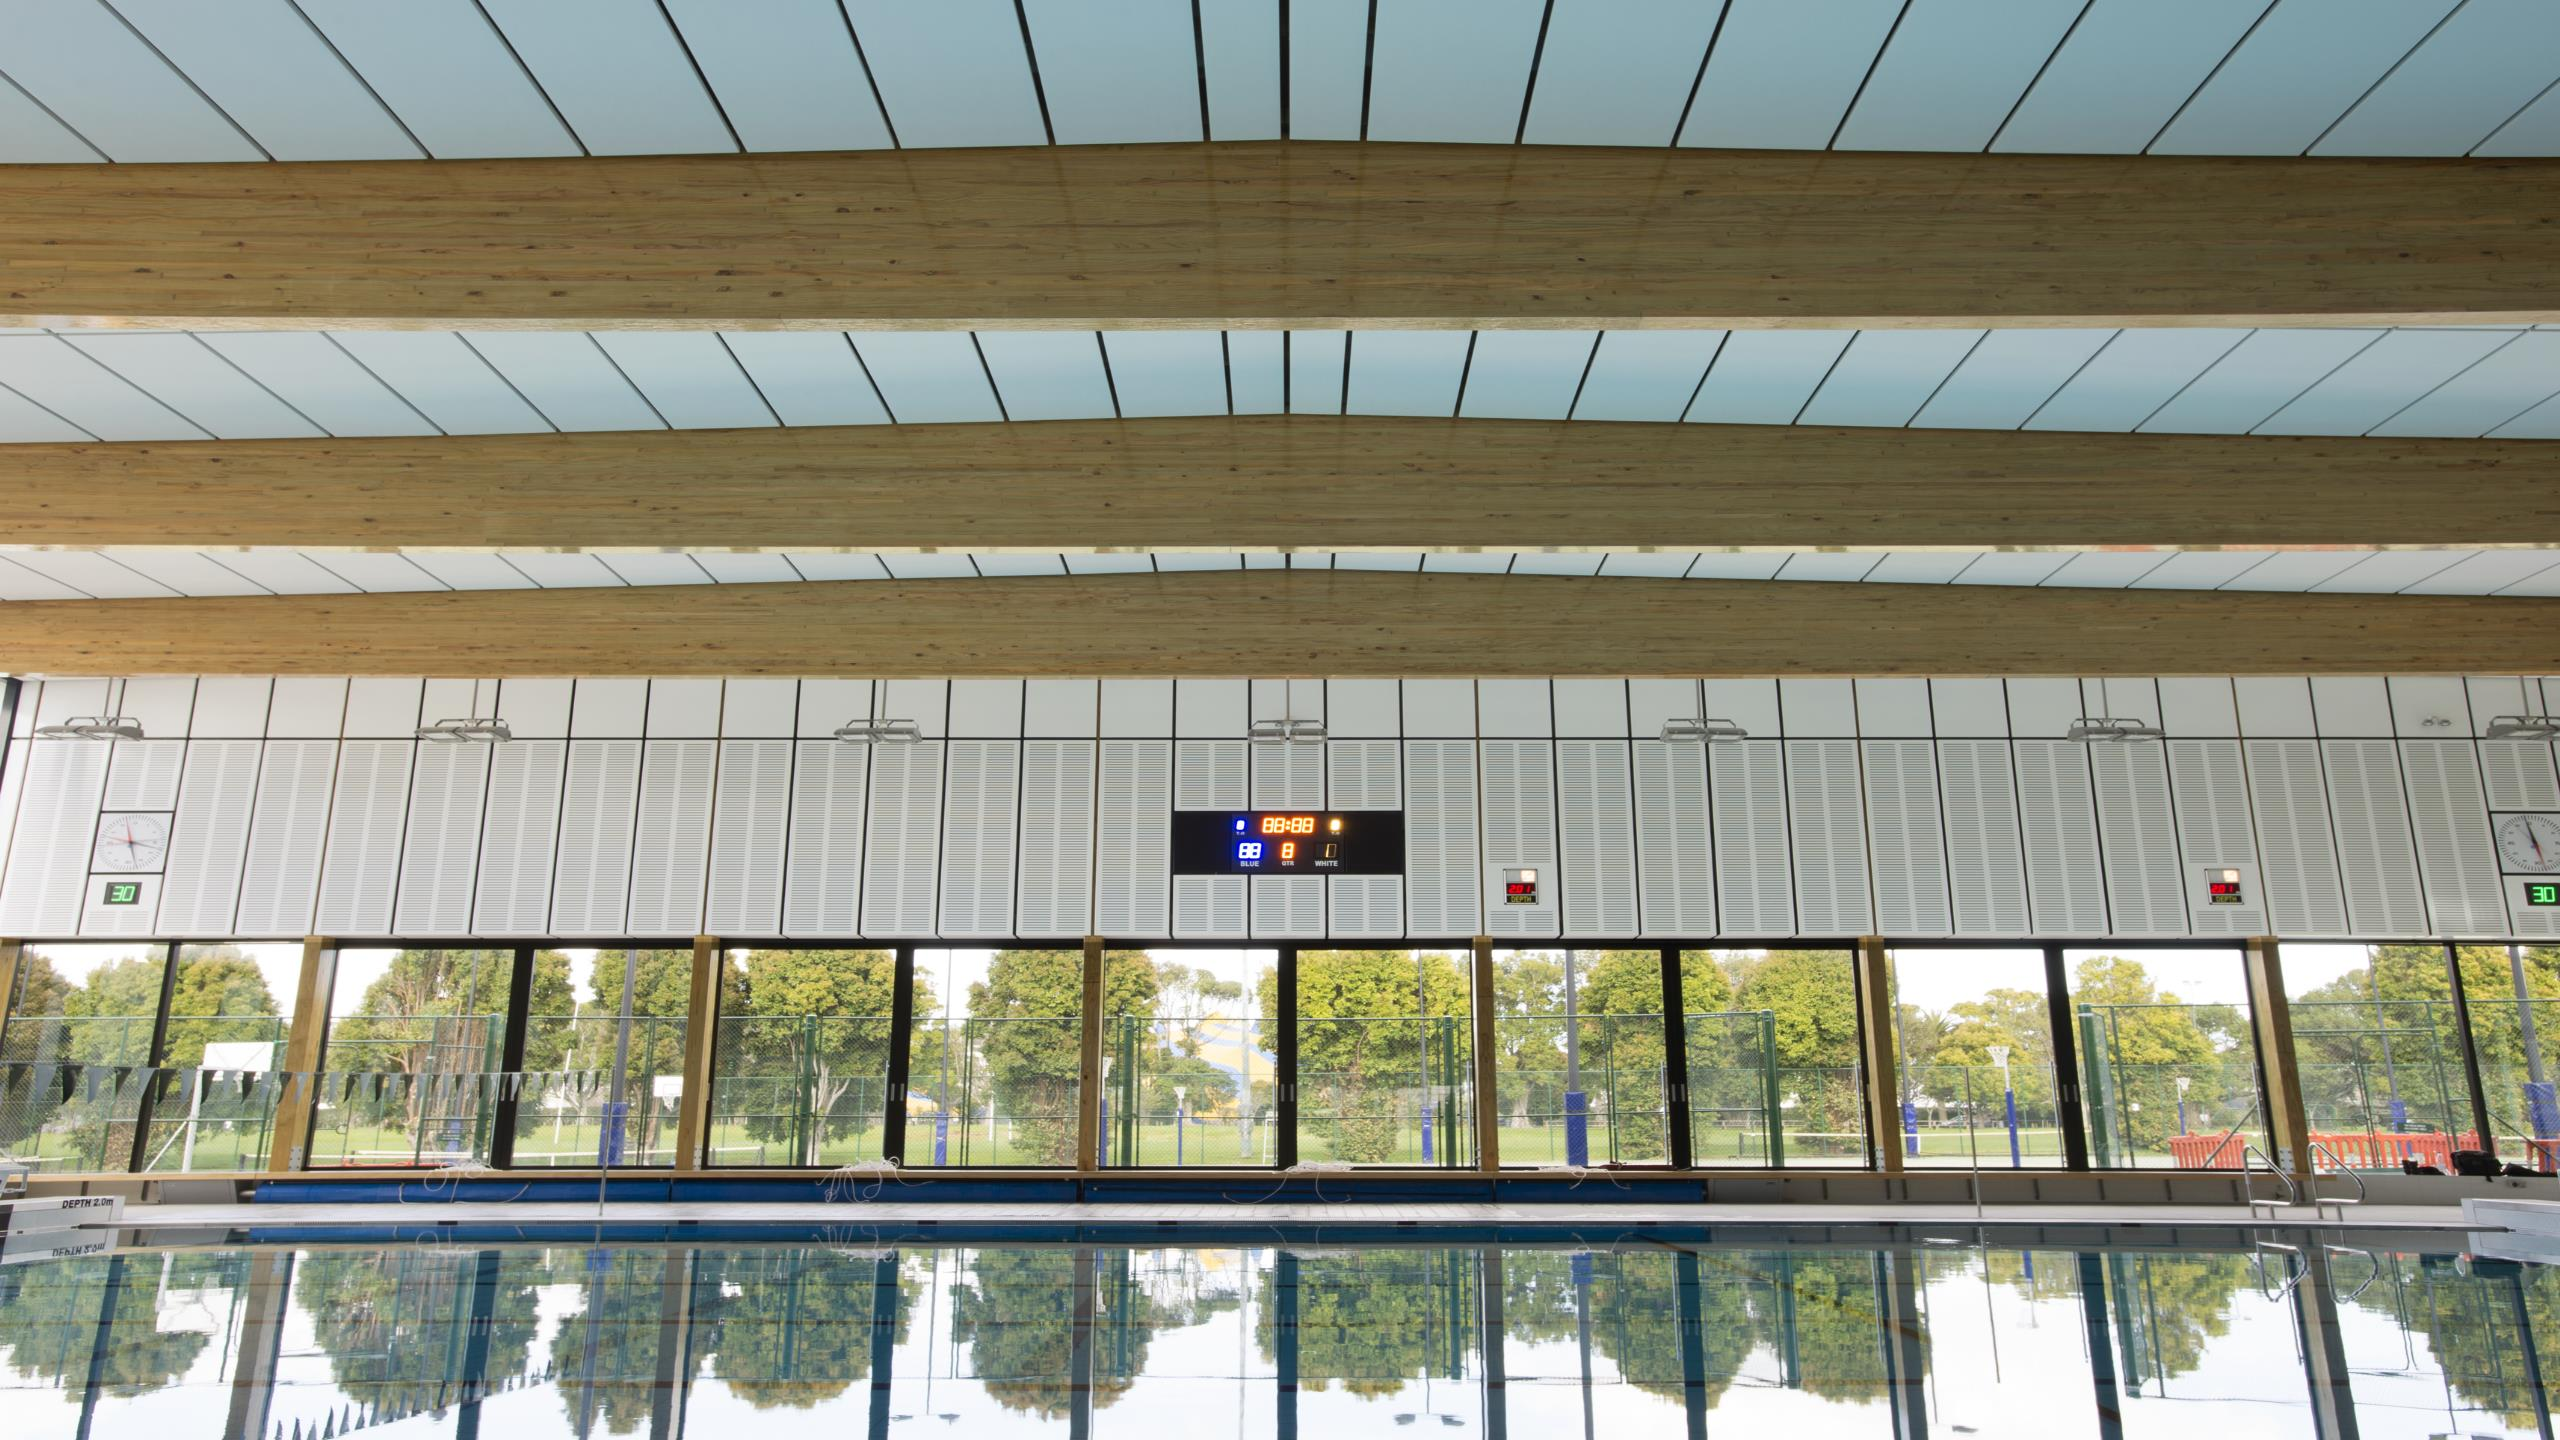 St Cuthberts Girls School swimming pool complex ceiling showing Triton Cloud pool panels installed